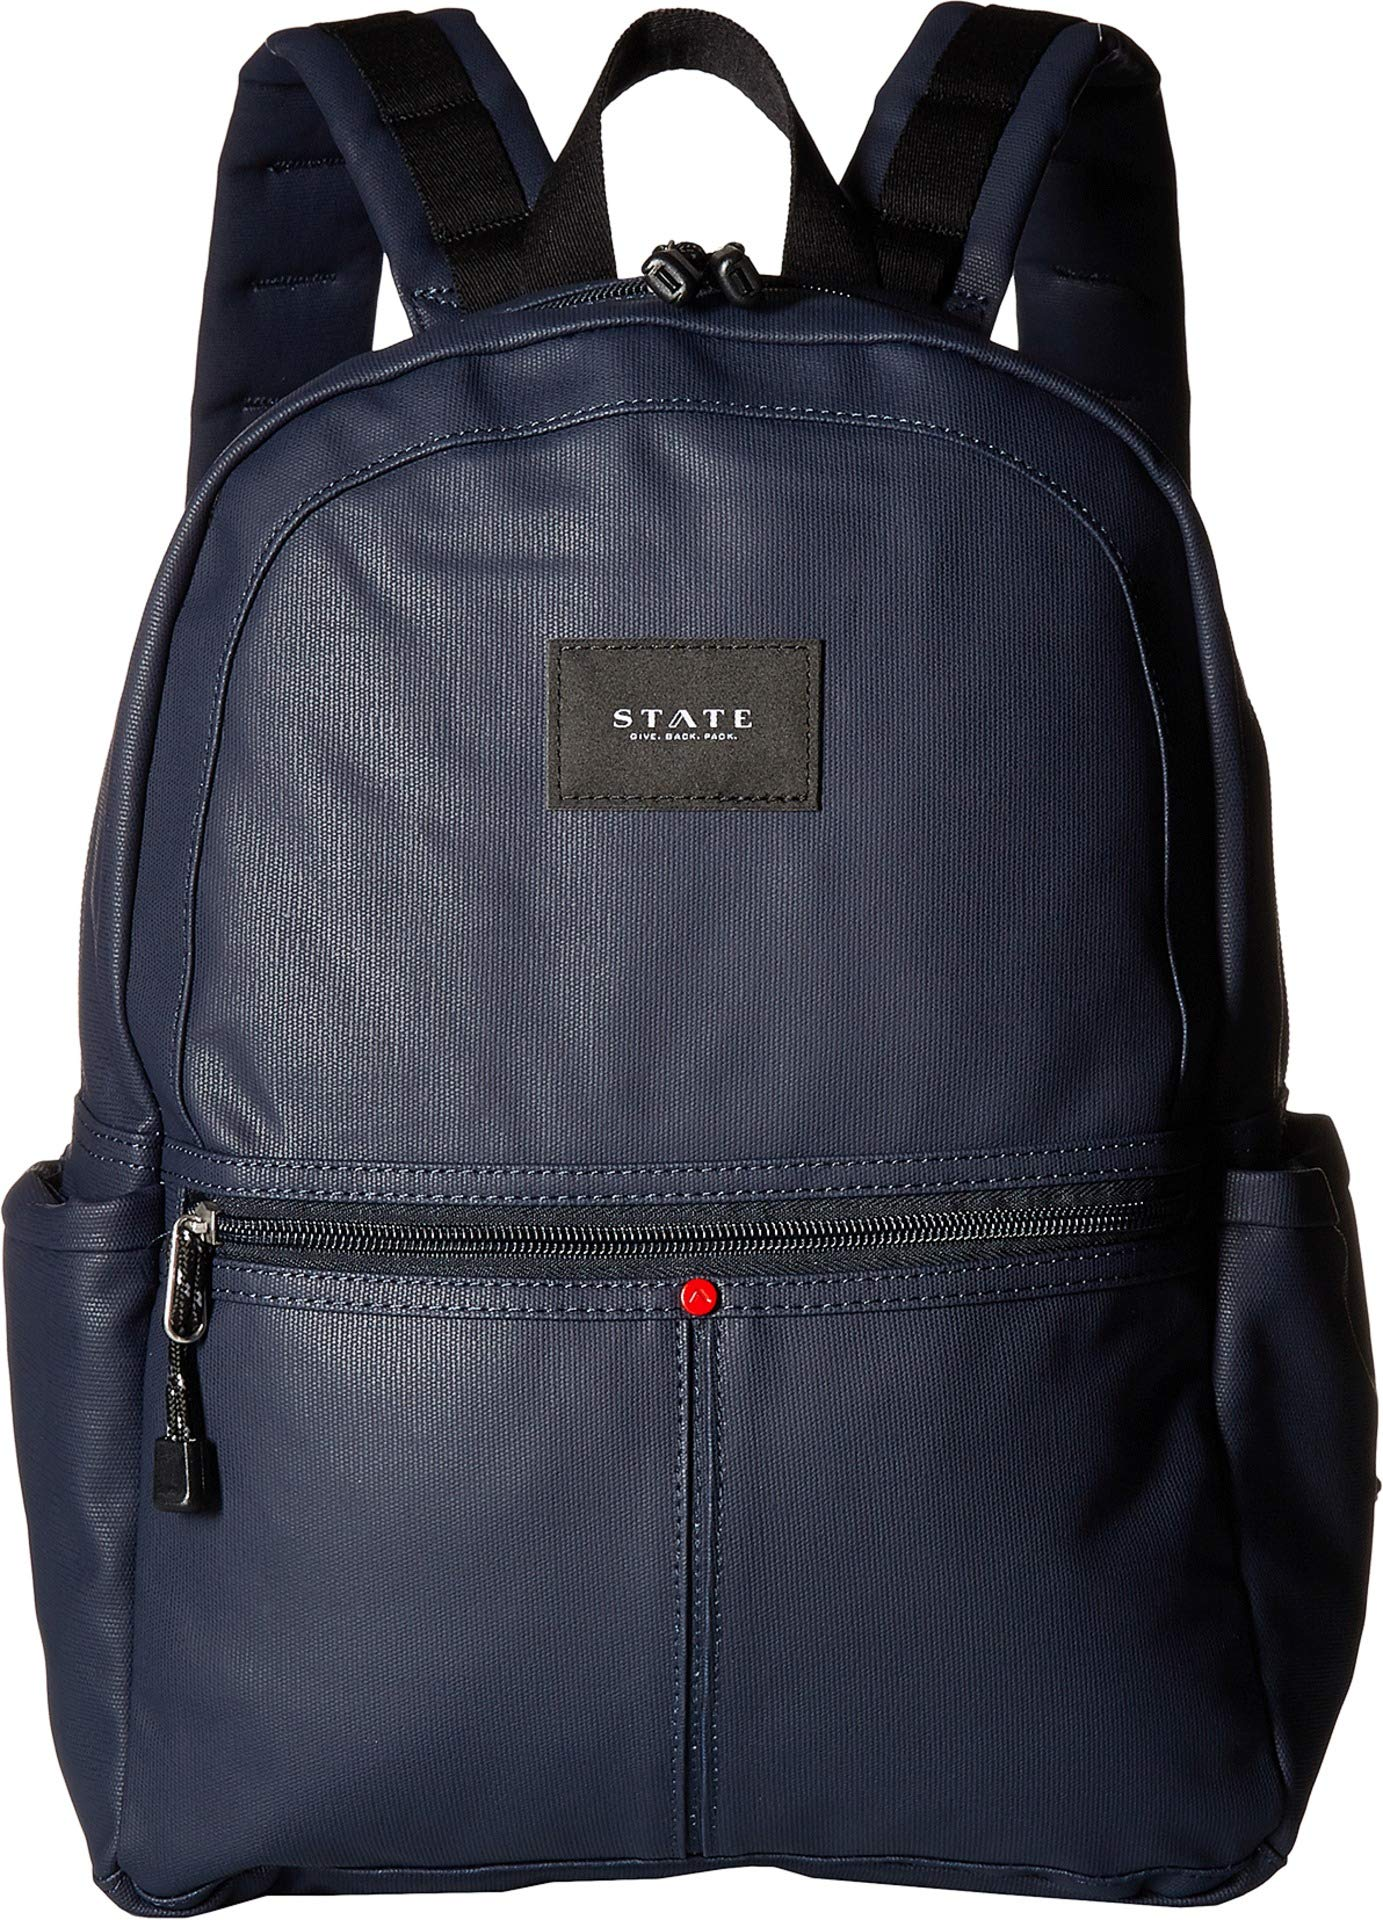 STATE Bags Women's Coated Canvas Kane Backpack Navy One Size by STATE Bags